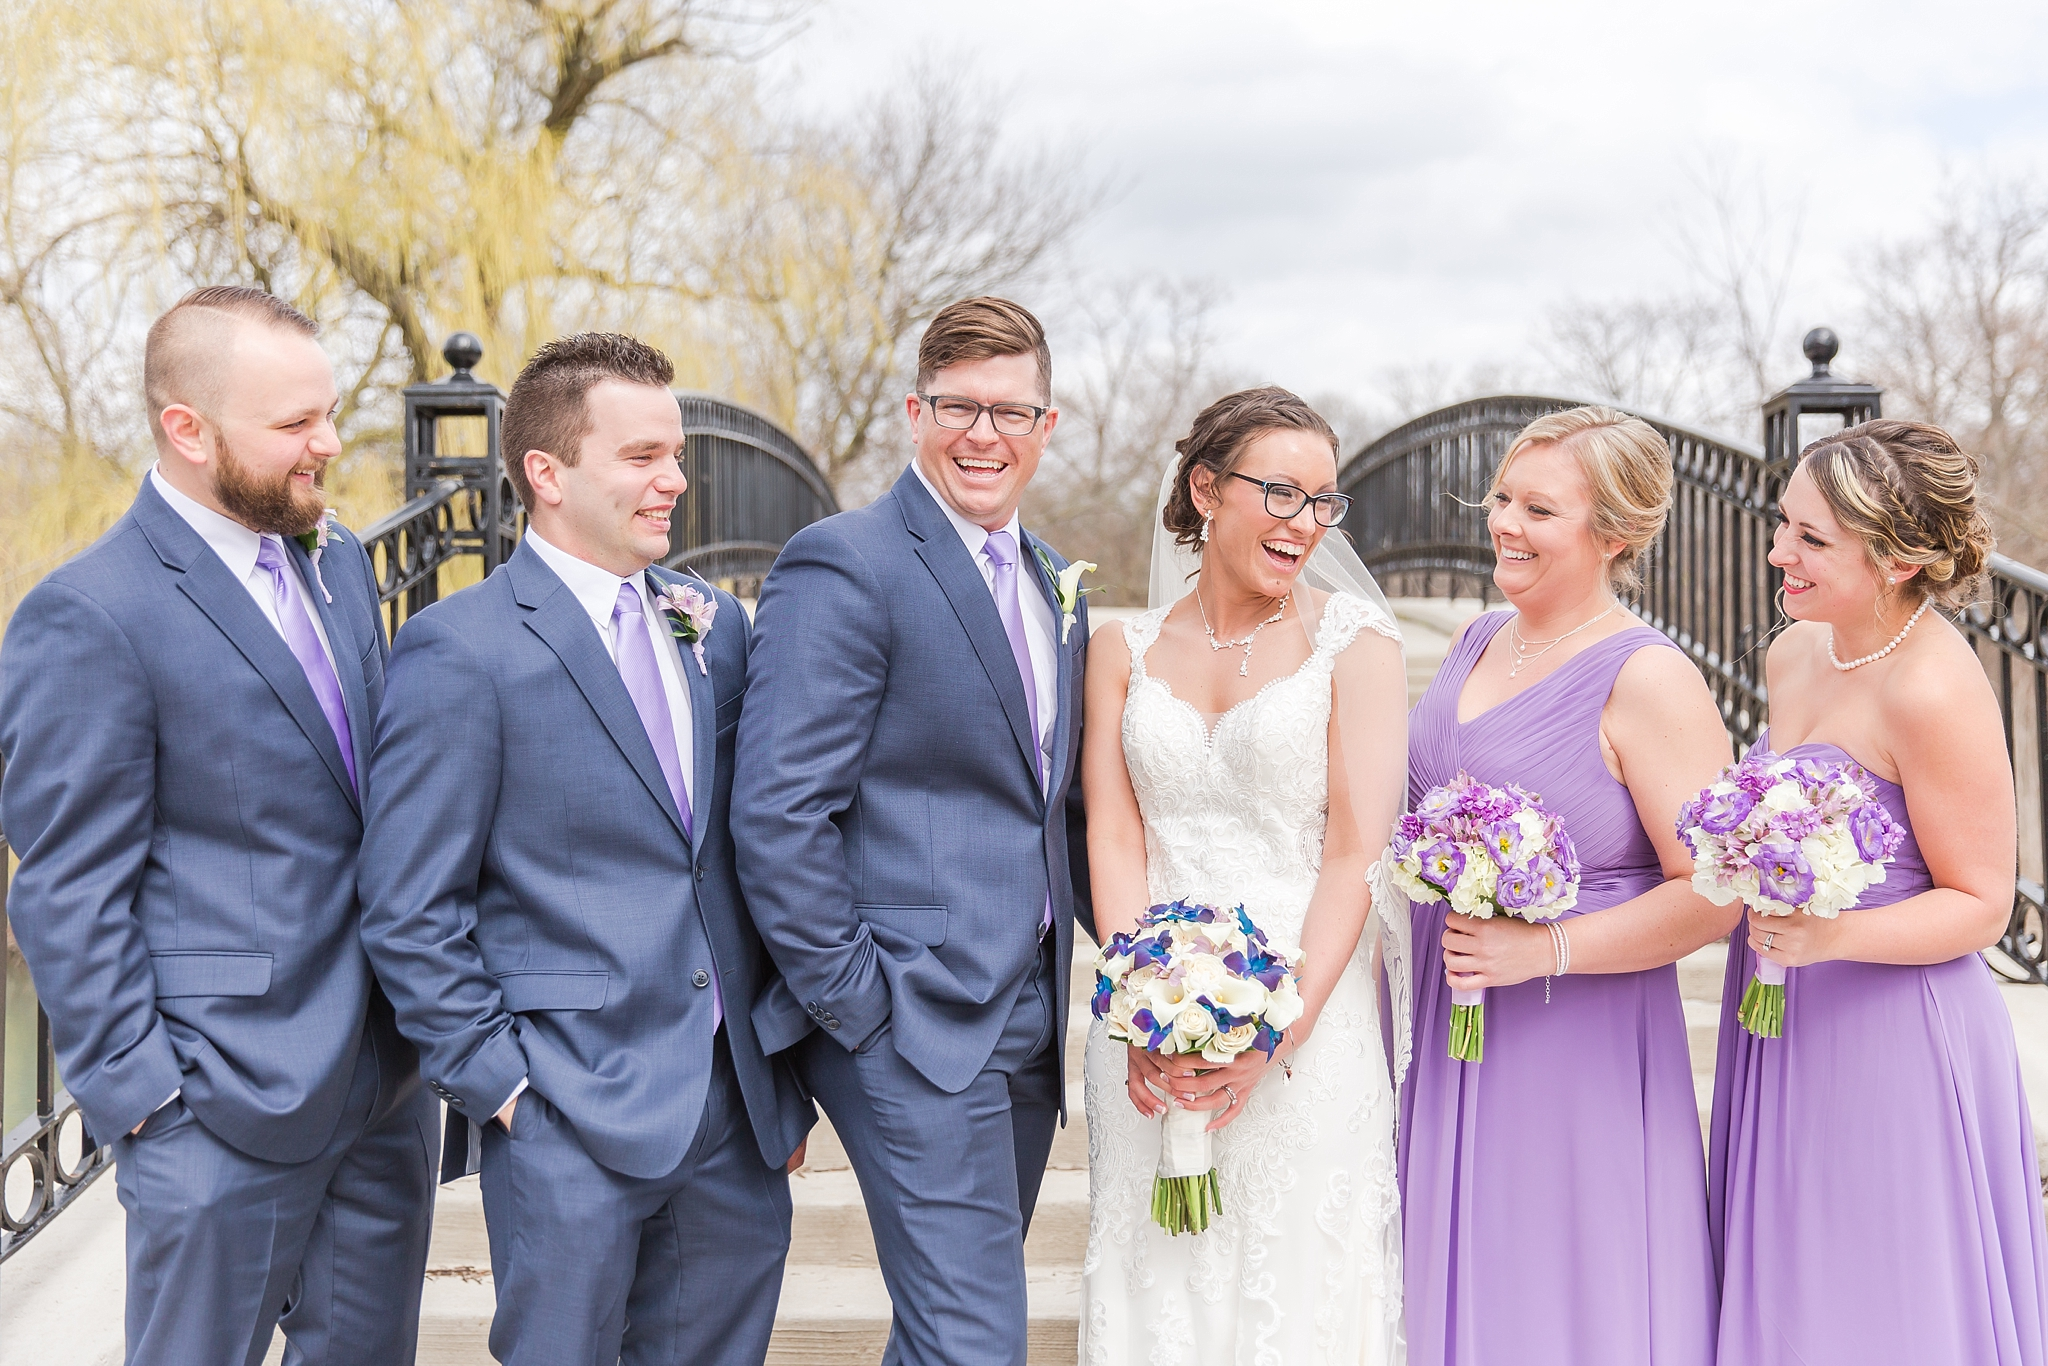 classic-timeless-candid-wedding-photos-in-grosse-ile-and-trenton-michigan-by-courtney-carolyn-photography_0046.jpg